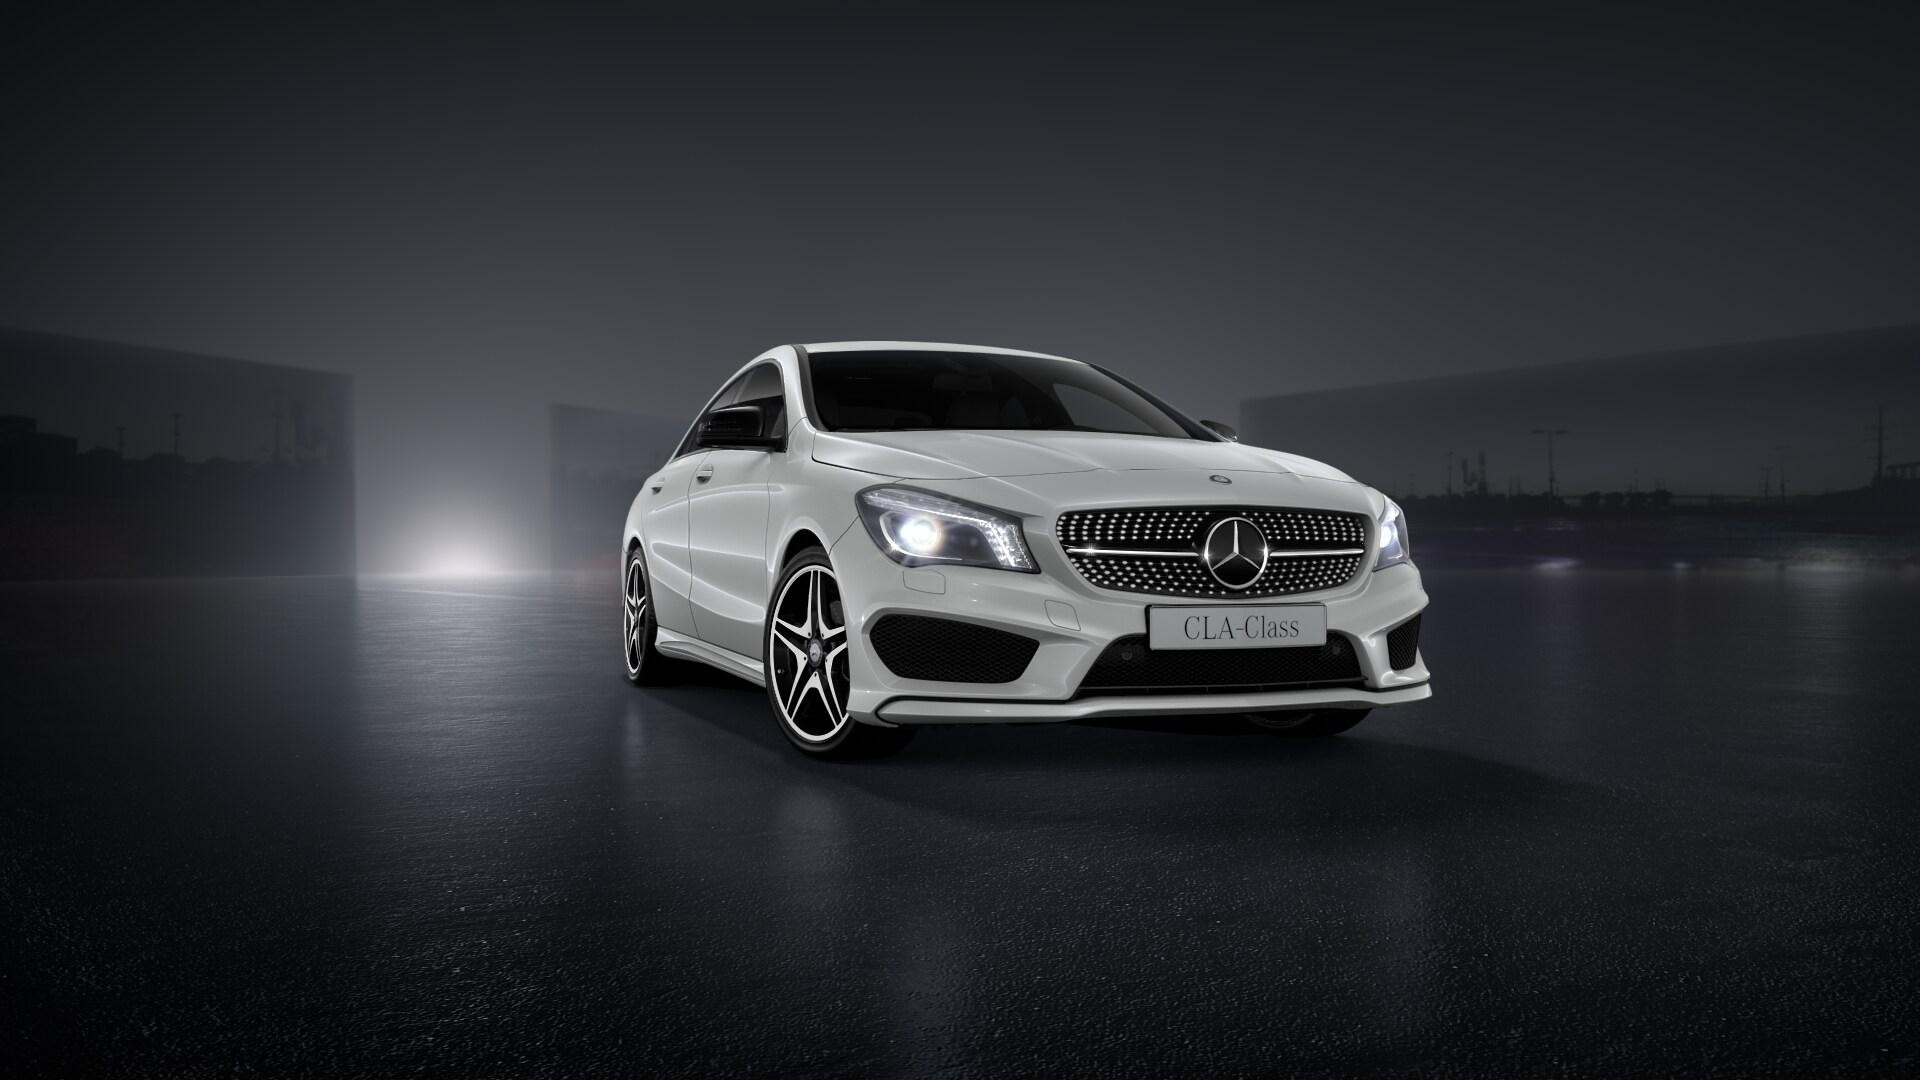 cars AMG Mercedes Benz auto CLA cla 200 Wallpapers 1920x1080